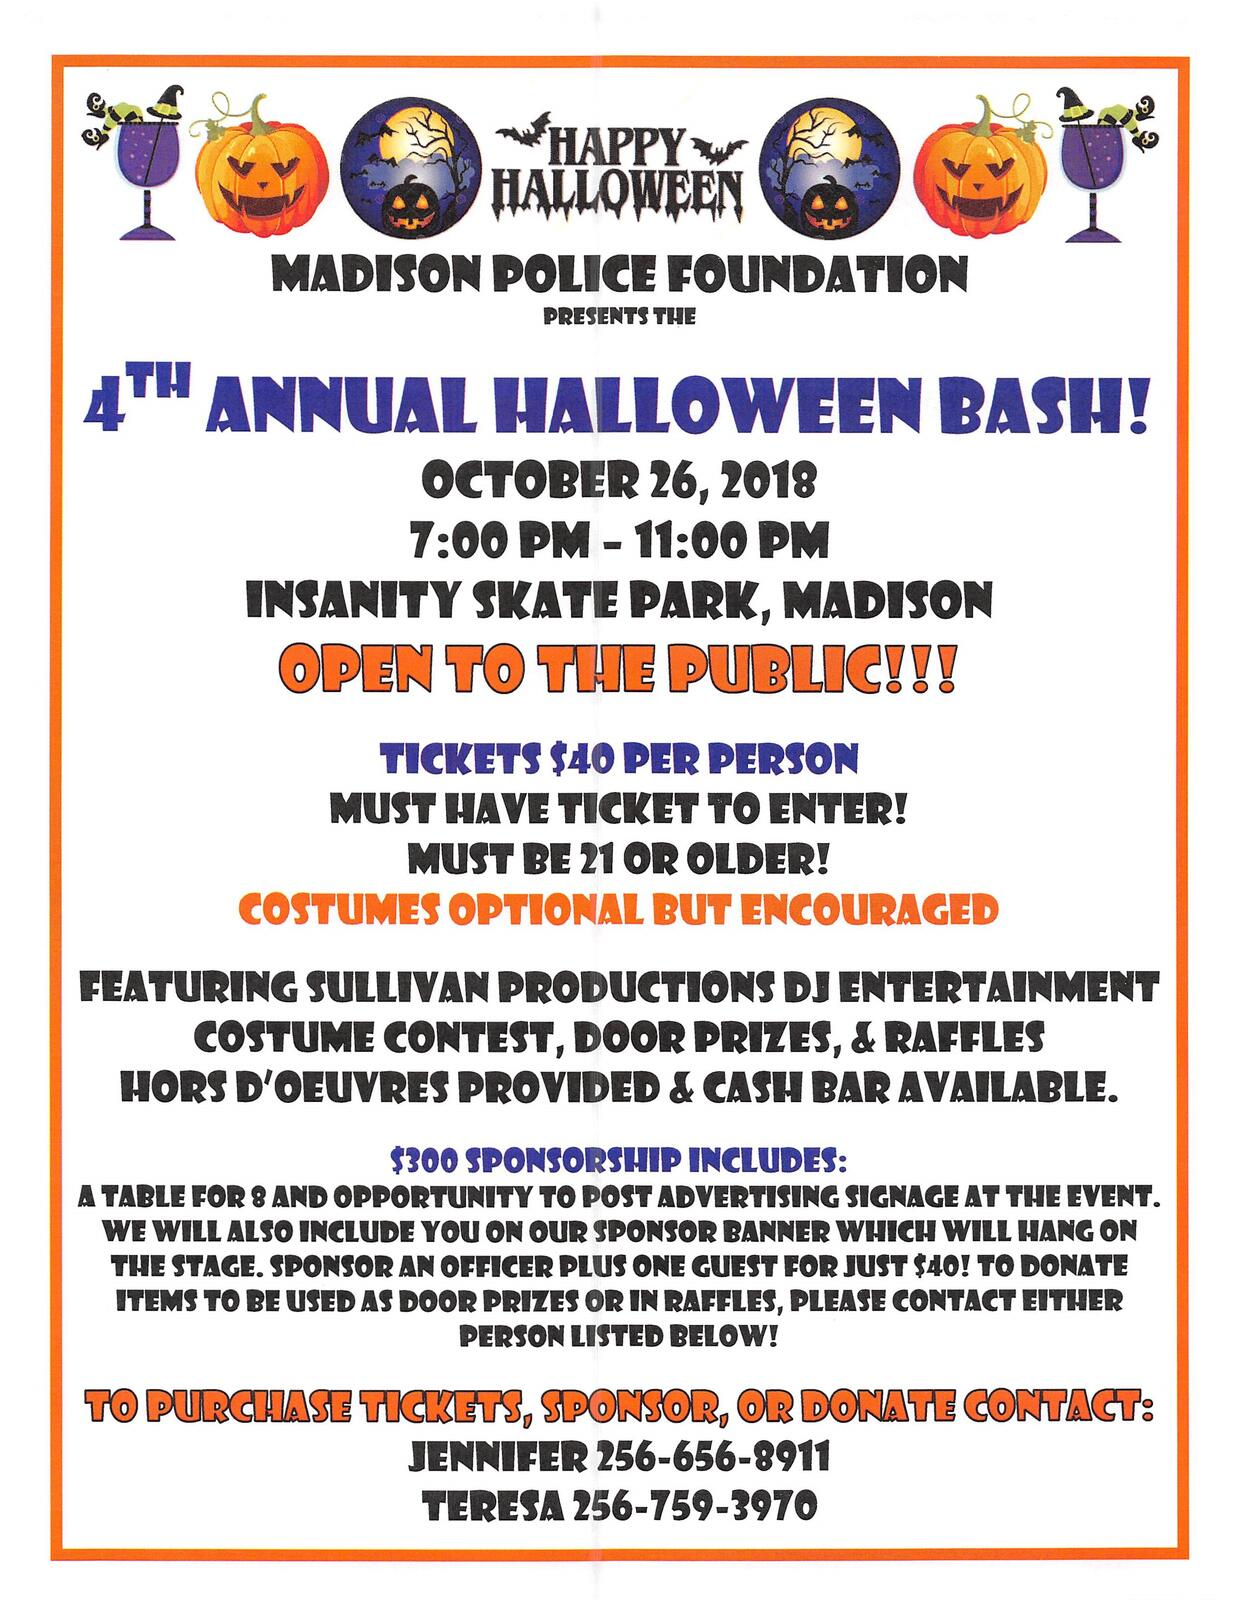 4th Annual Halloween Bash Friday, October 26th (Madison Police